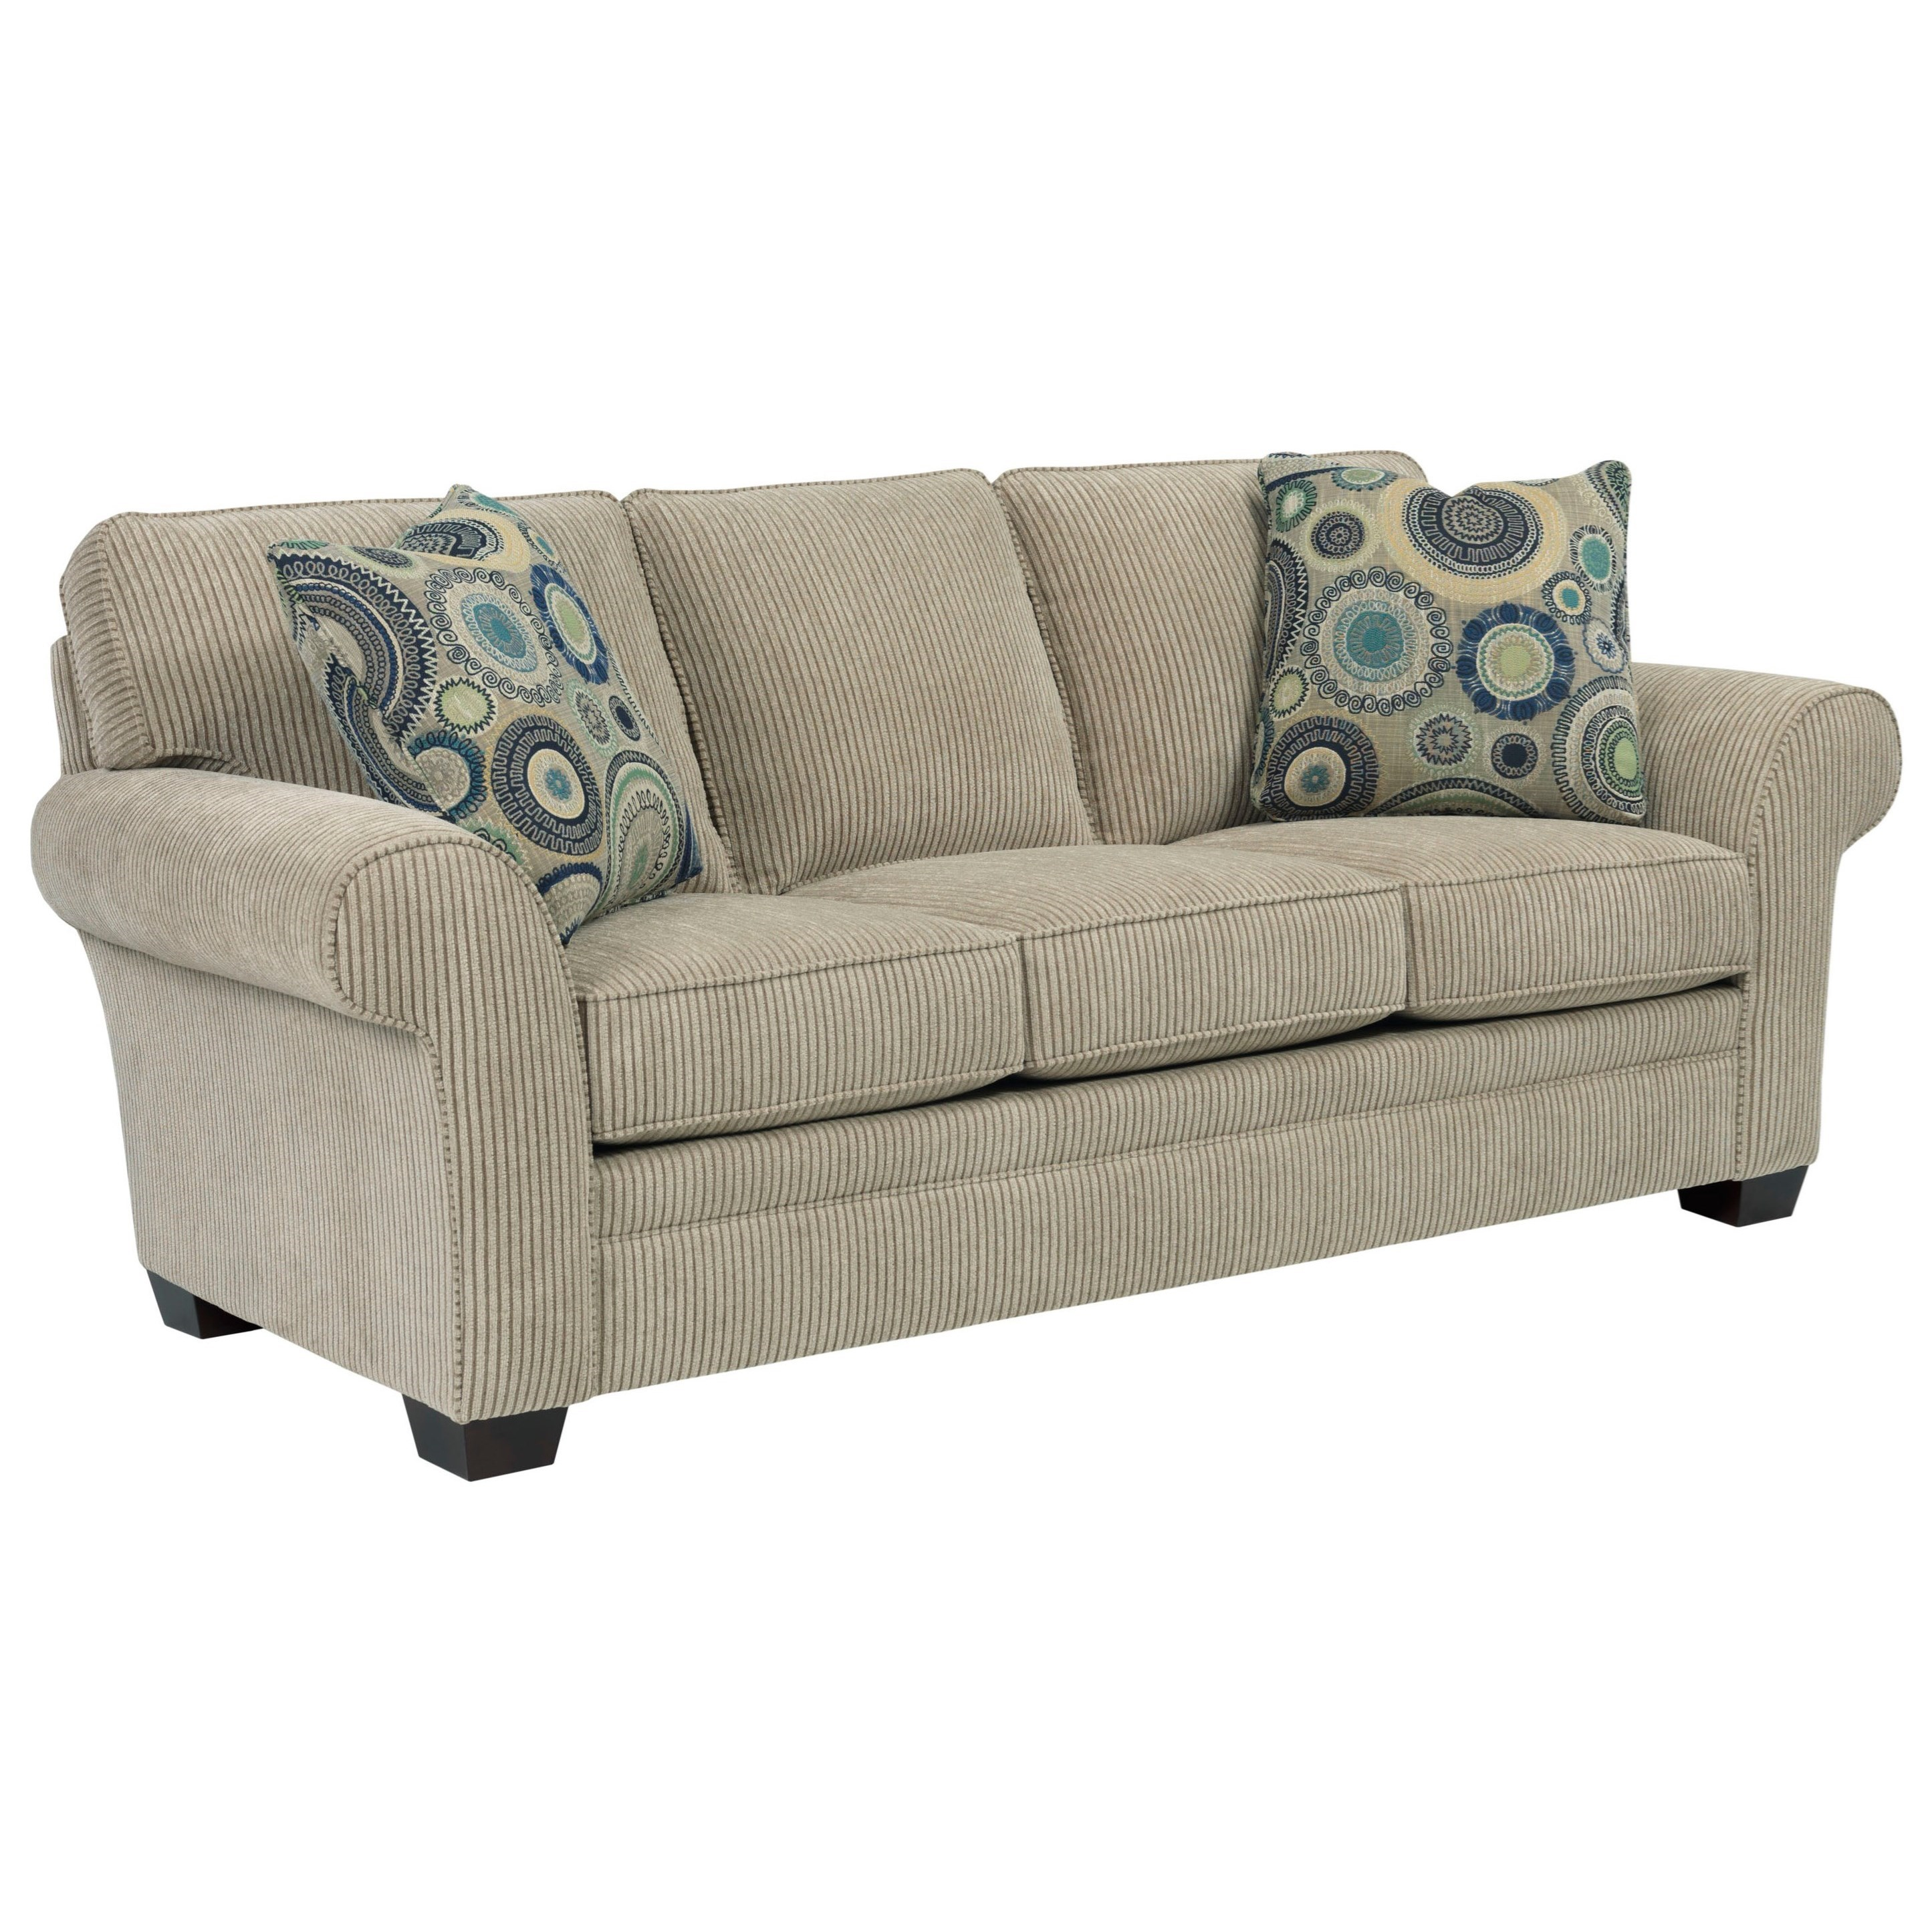 Broyhill Furniture Zachary Queen Size Sleeper - Item Number: 7902-7-8785-93